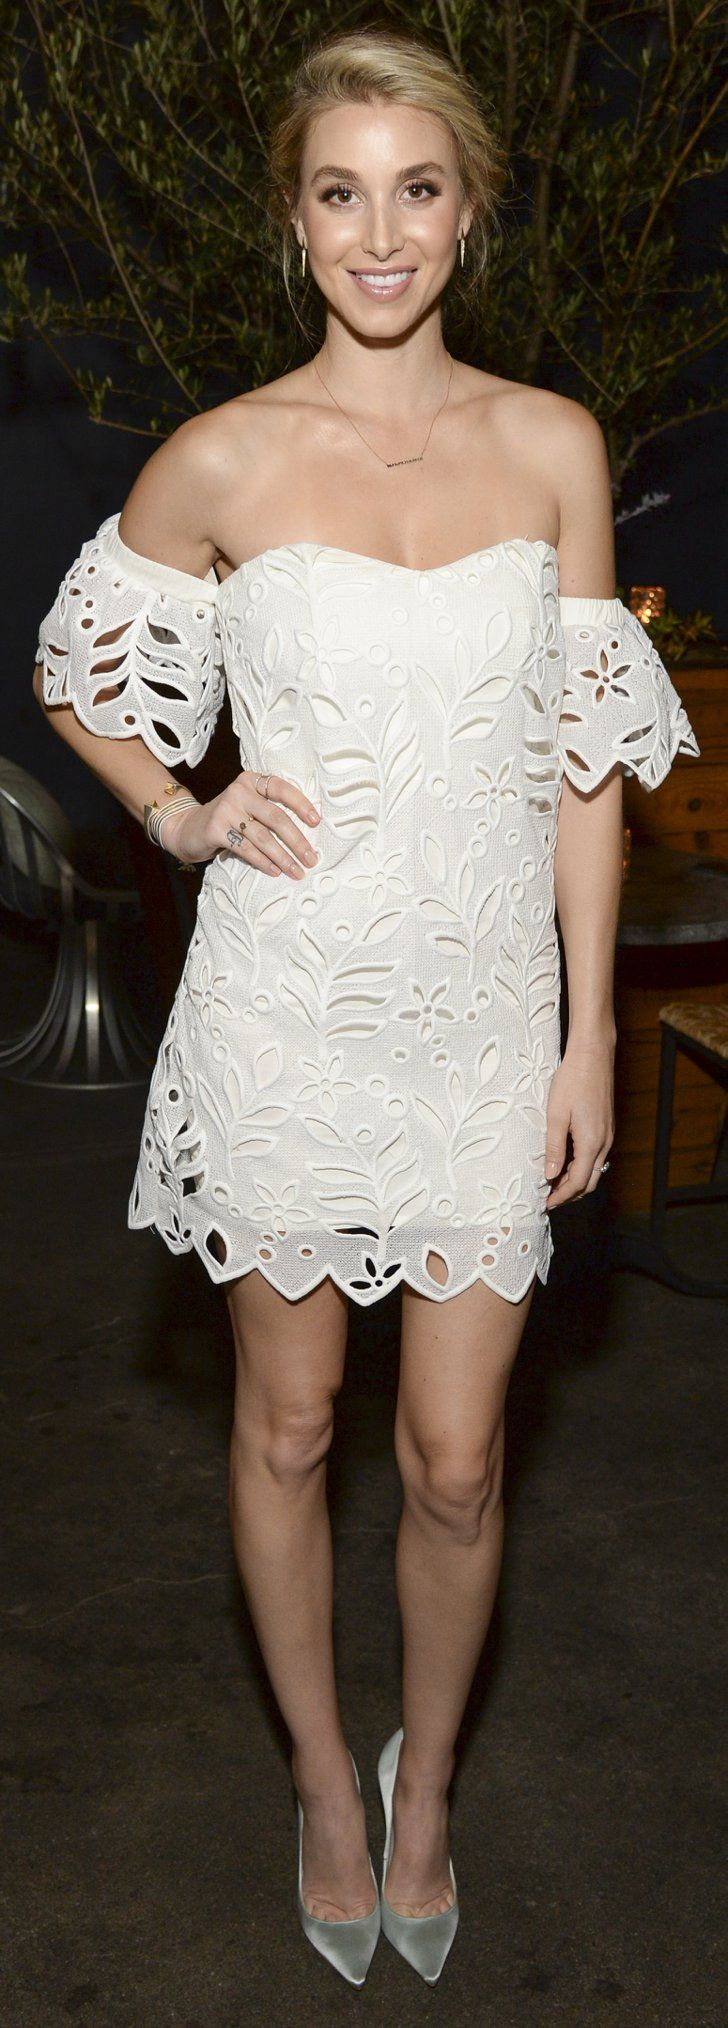 The Reason We're Really Glad This Wasn't Whitney Port's Wedding Dress